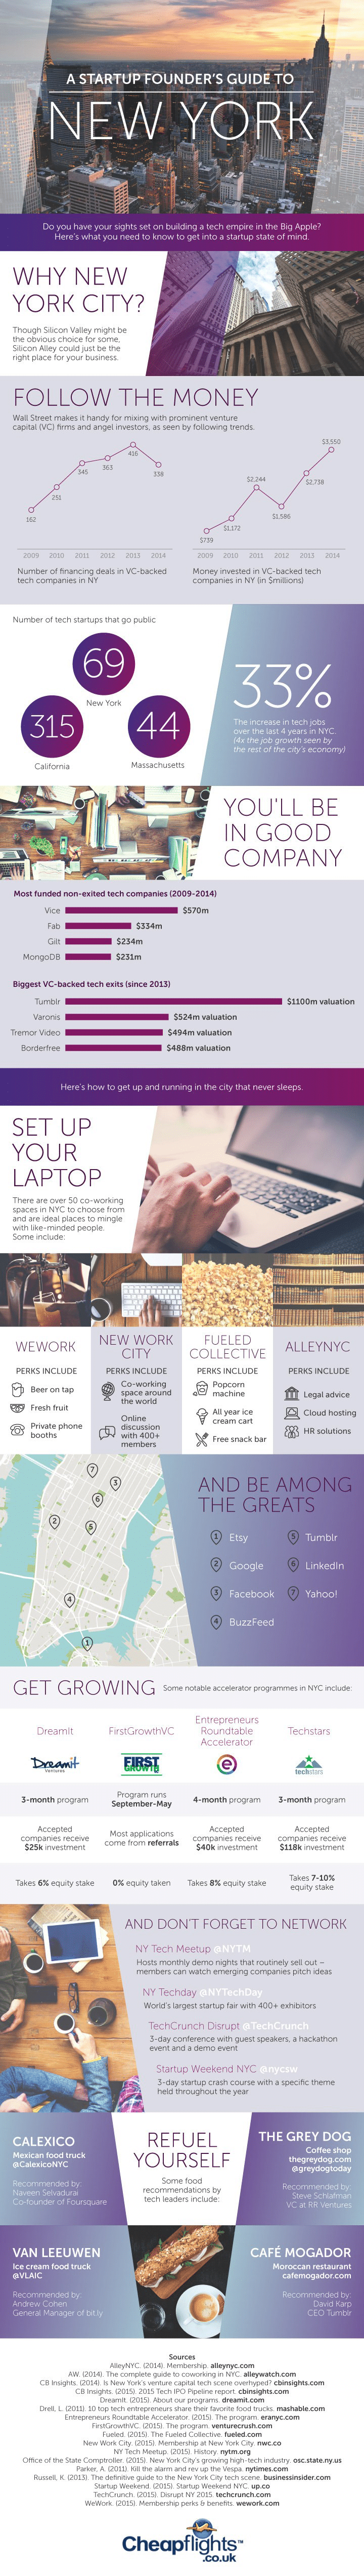 A Startup Founder's Guide To New York City [Infographic]